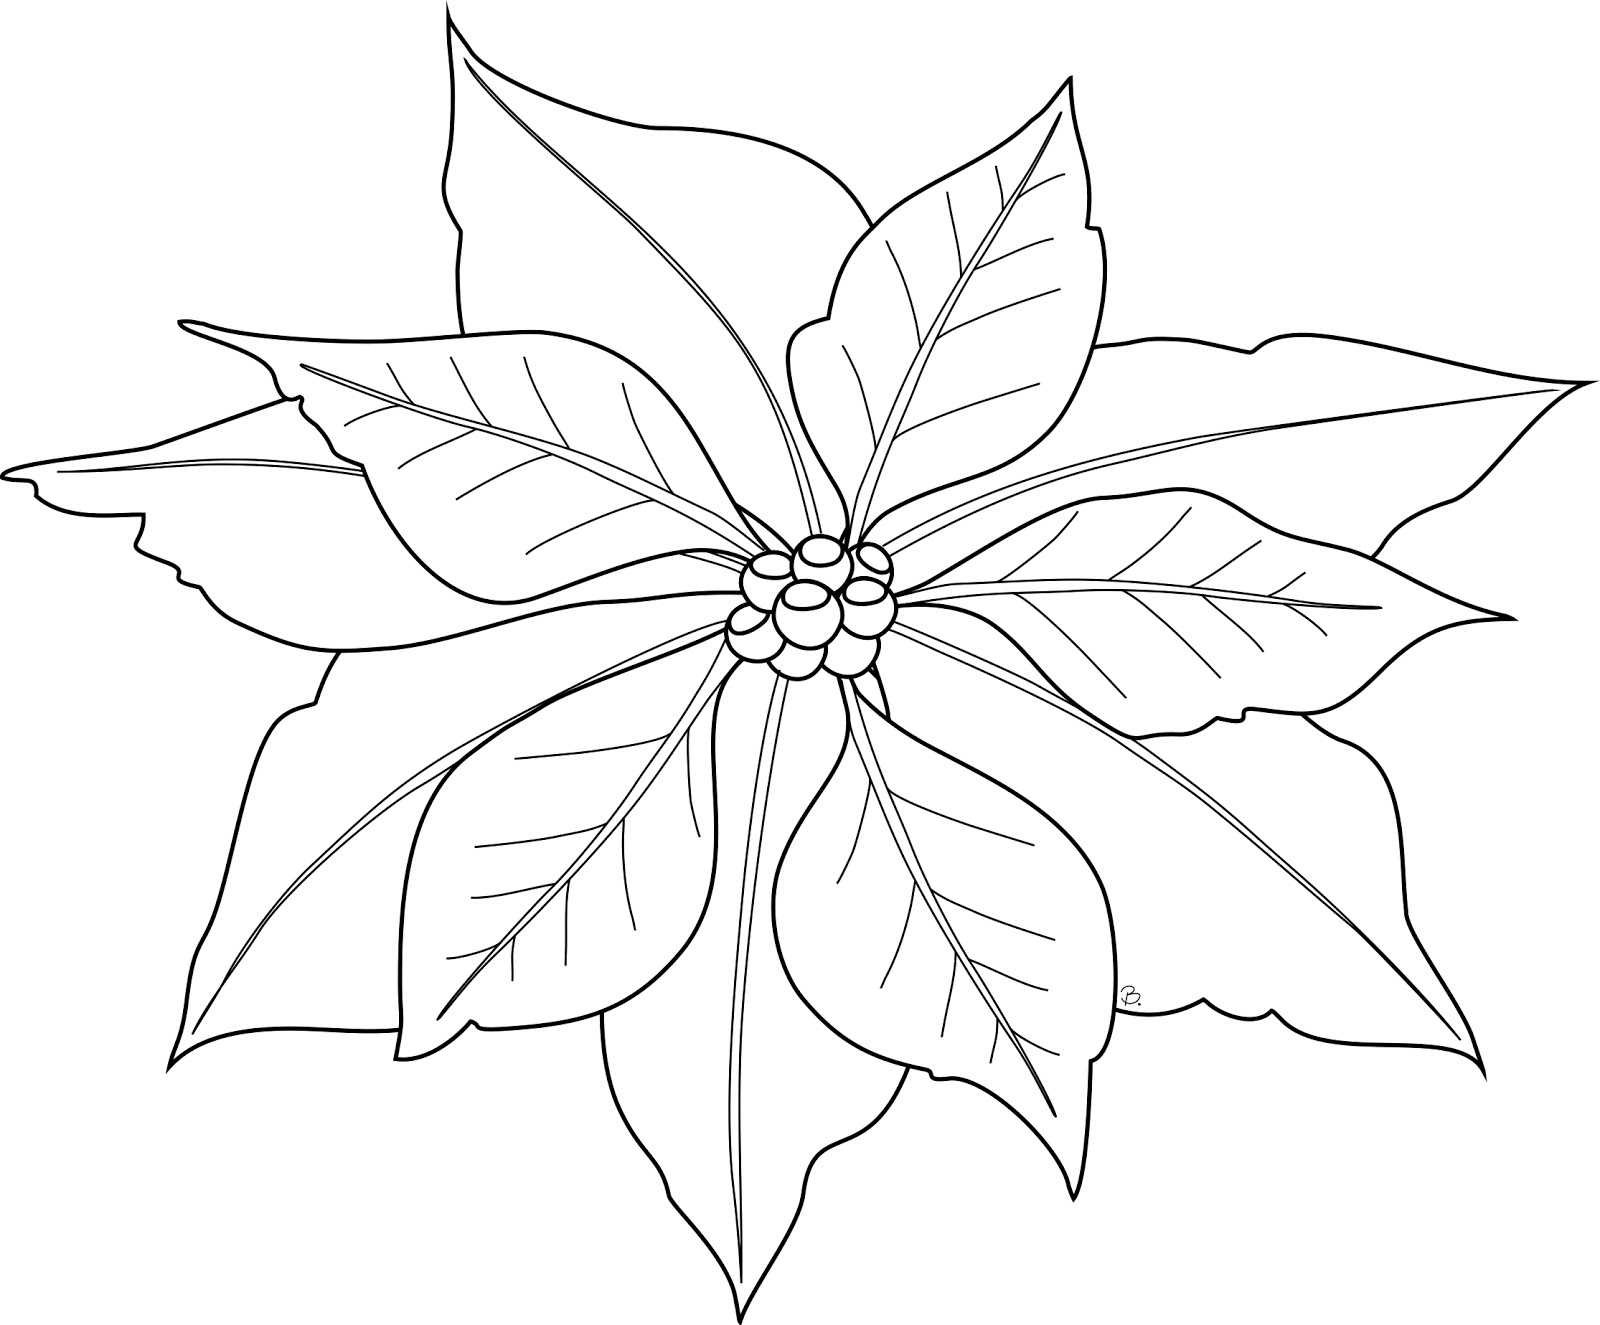 poinsettia coloring sheet pin on coloring pages christmas winter holiday wreaths coloring sheet poinsettia